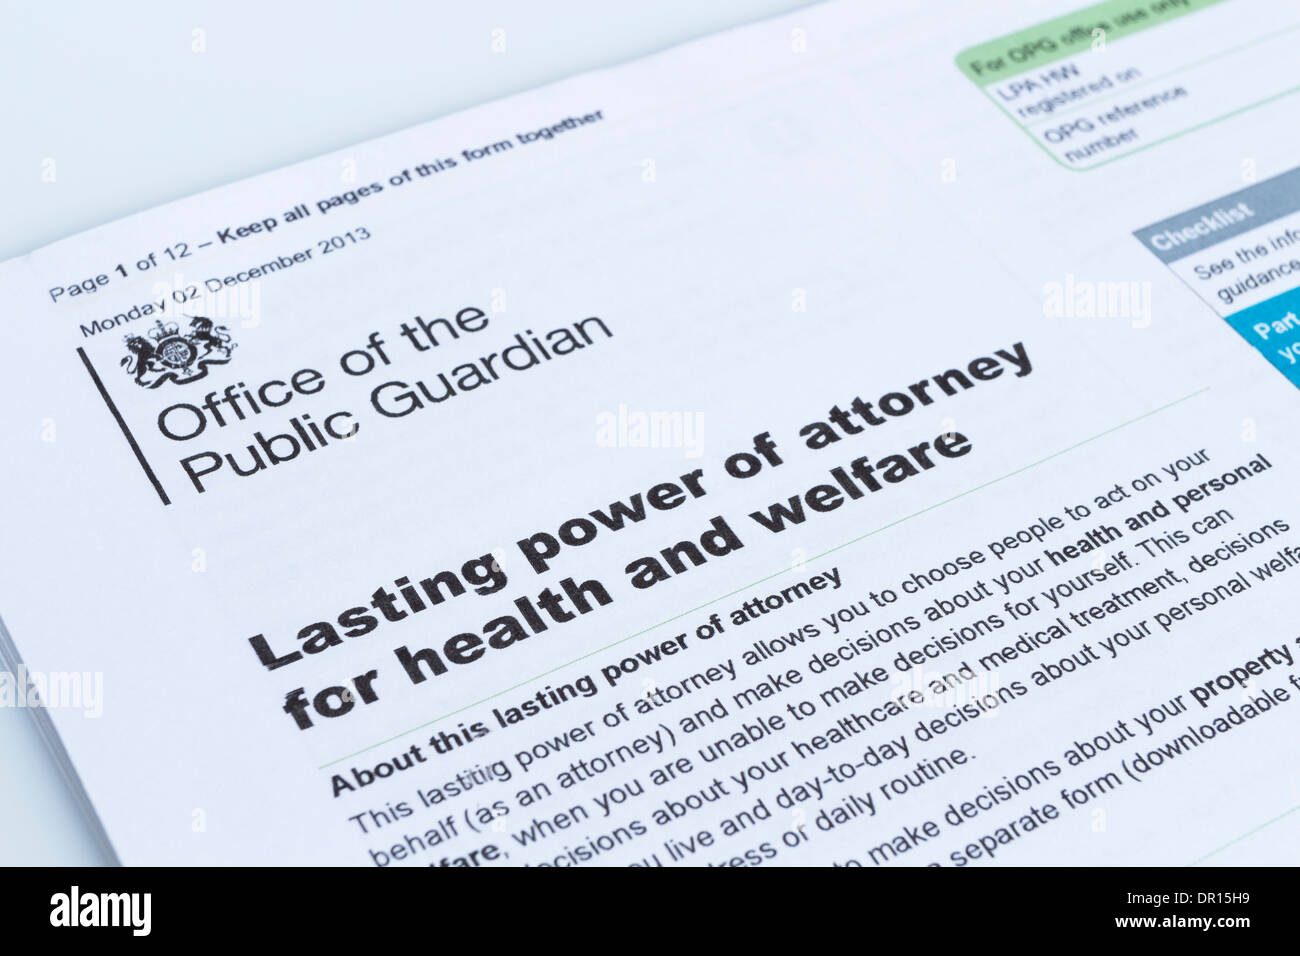 lasting power of attorney for health and welfare form from the office of the public guardian uk